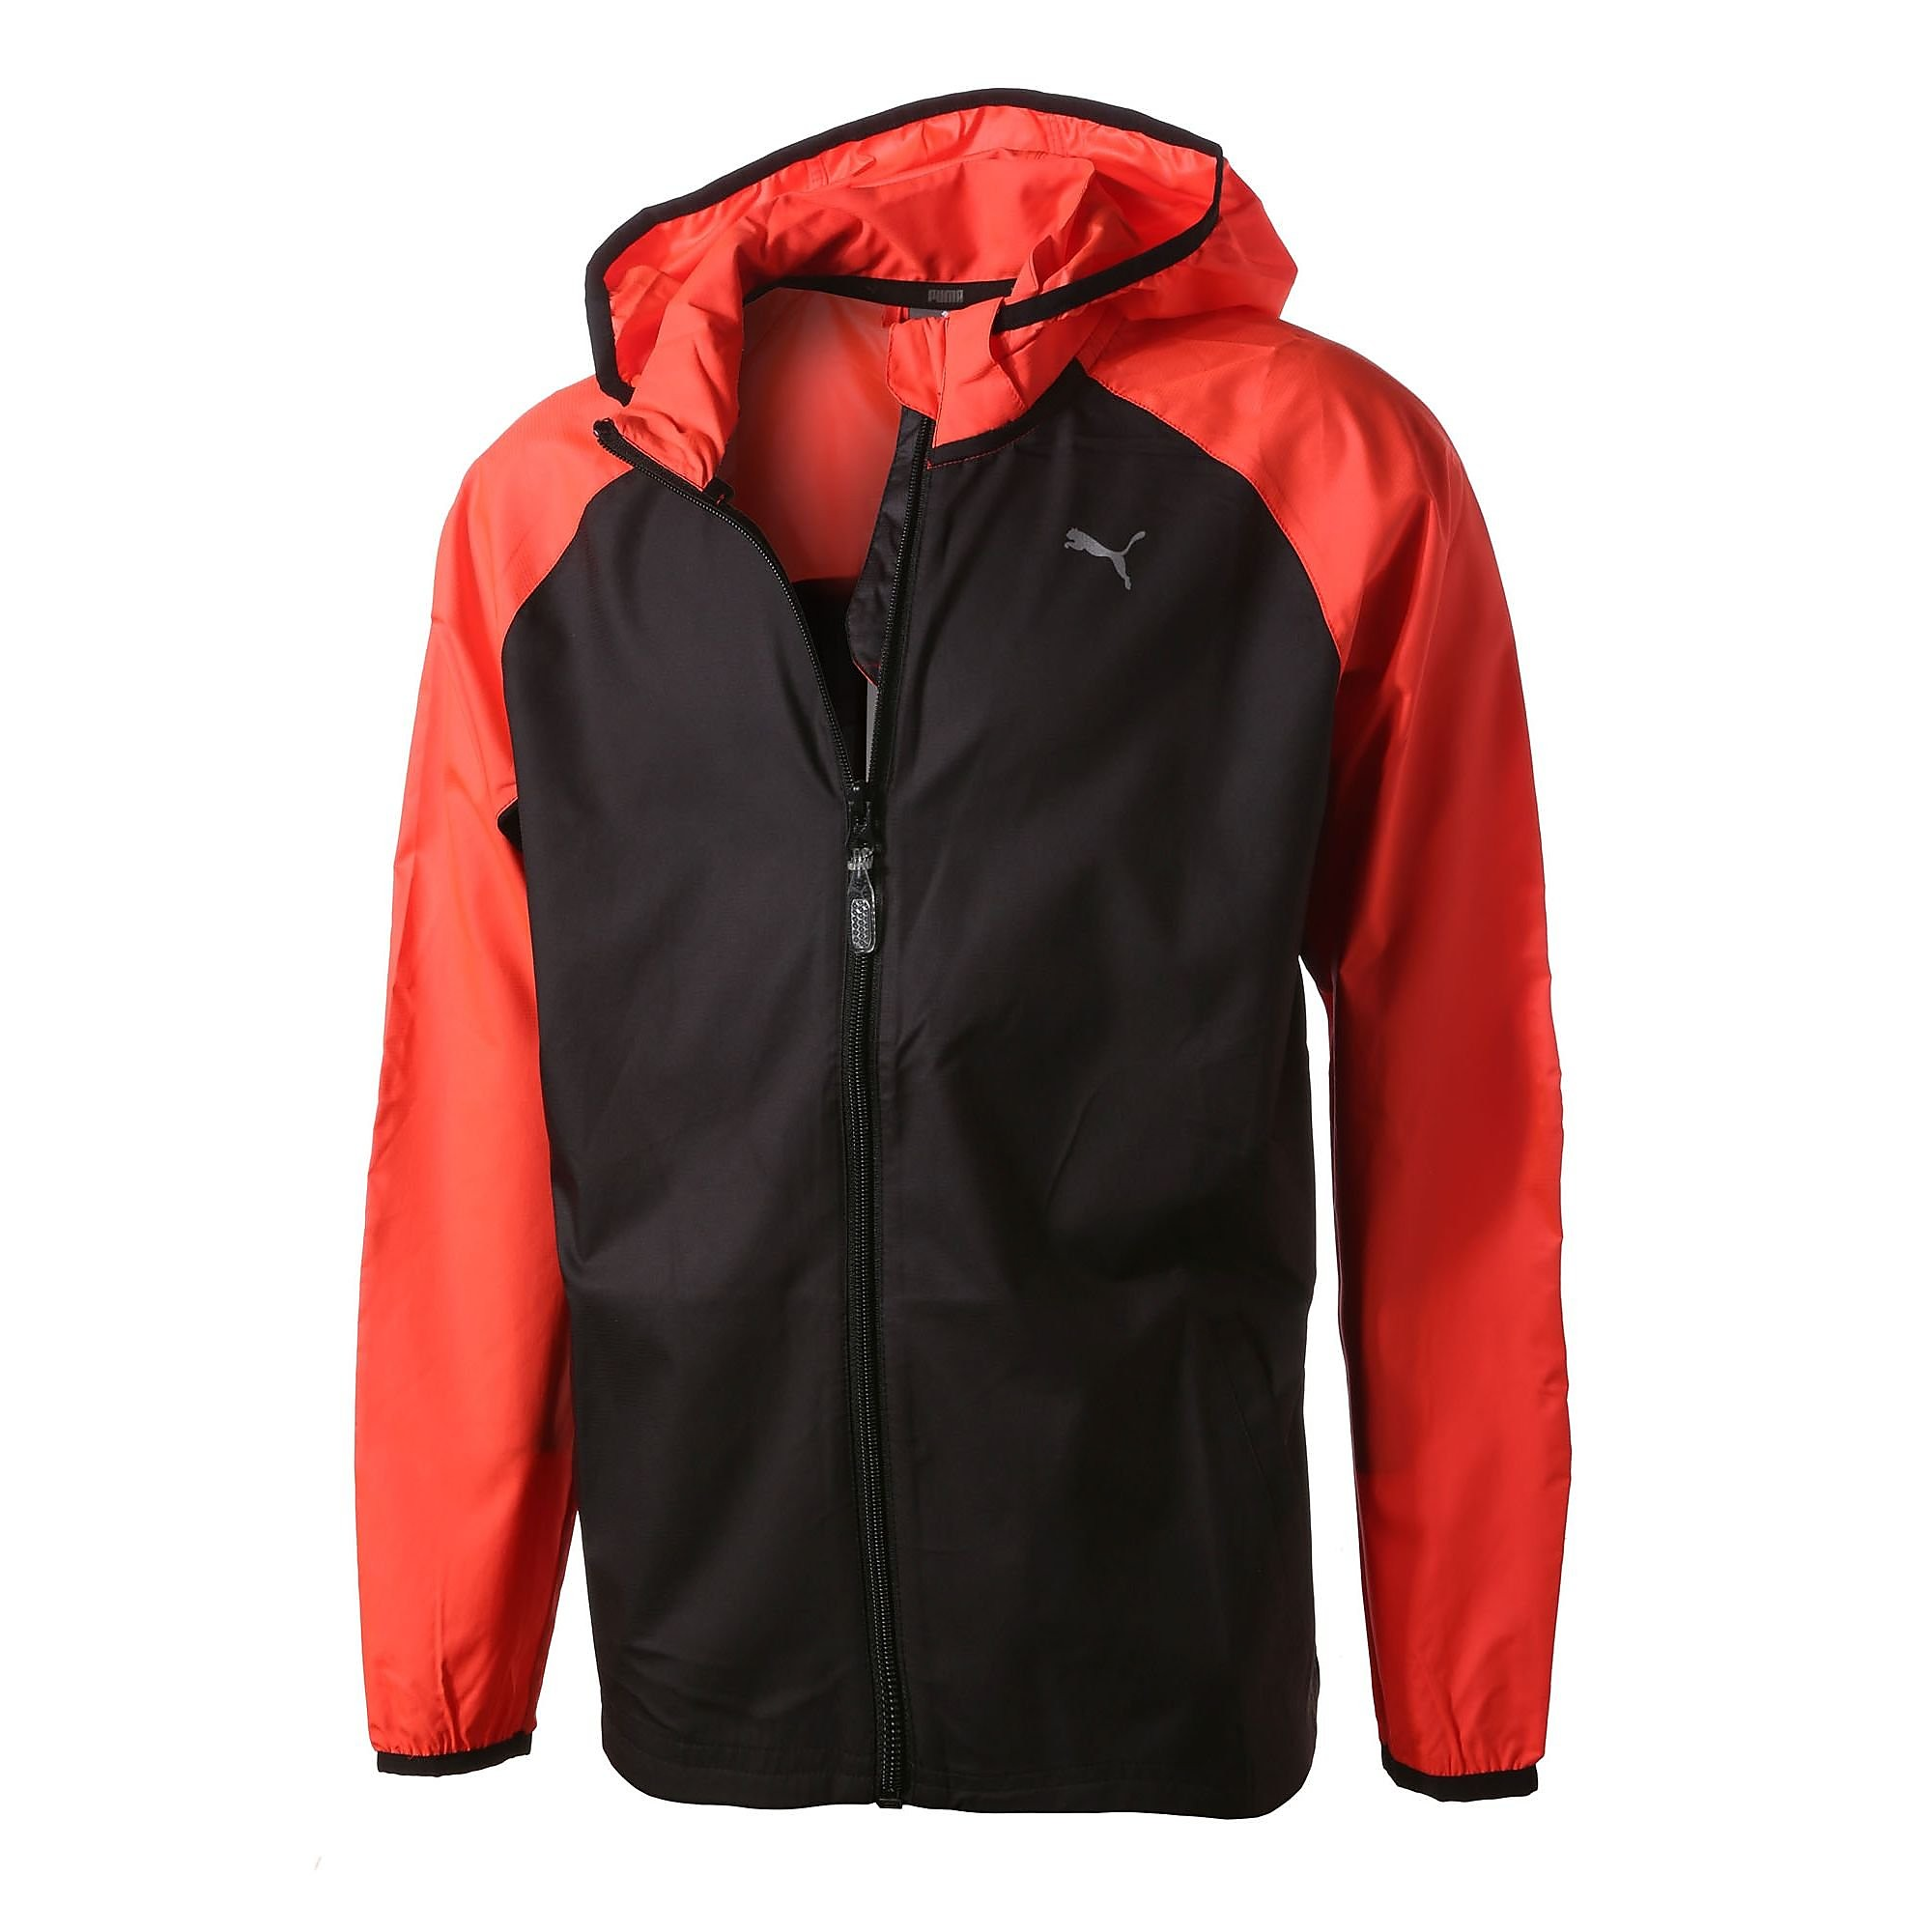 PUMA ACTIVE RAPID WINDBREAKER